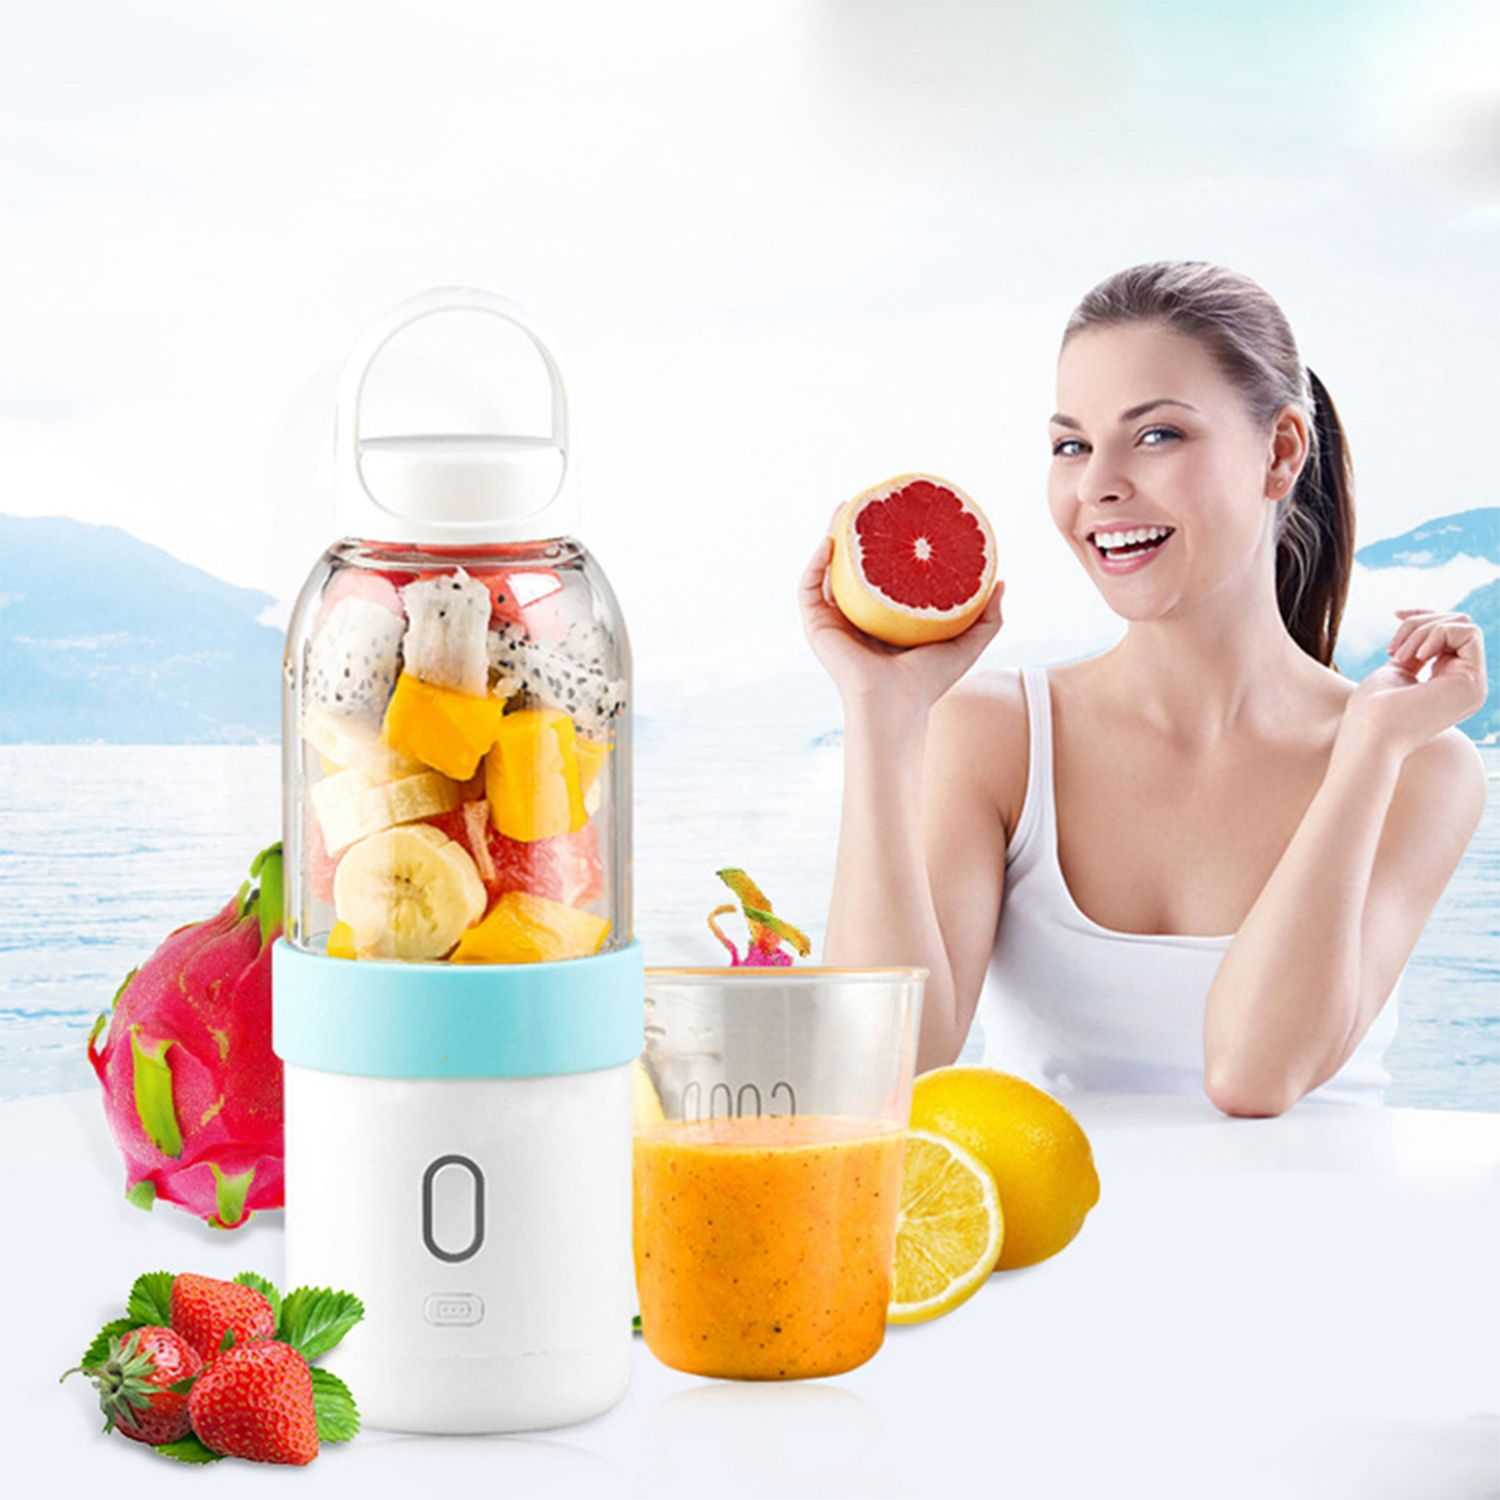 550ml Portable Blender USB Juicer Cup Fruit Vegetable Mixer Smoothie Milk Shake Hand Personal Small Juice Make Machine Extractor550ml Portable Blender USB Juicer Cup Fruit Vegetable Mixer Smoothie Milk Shake Hand Personal Small Juice Make Machine Extractor